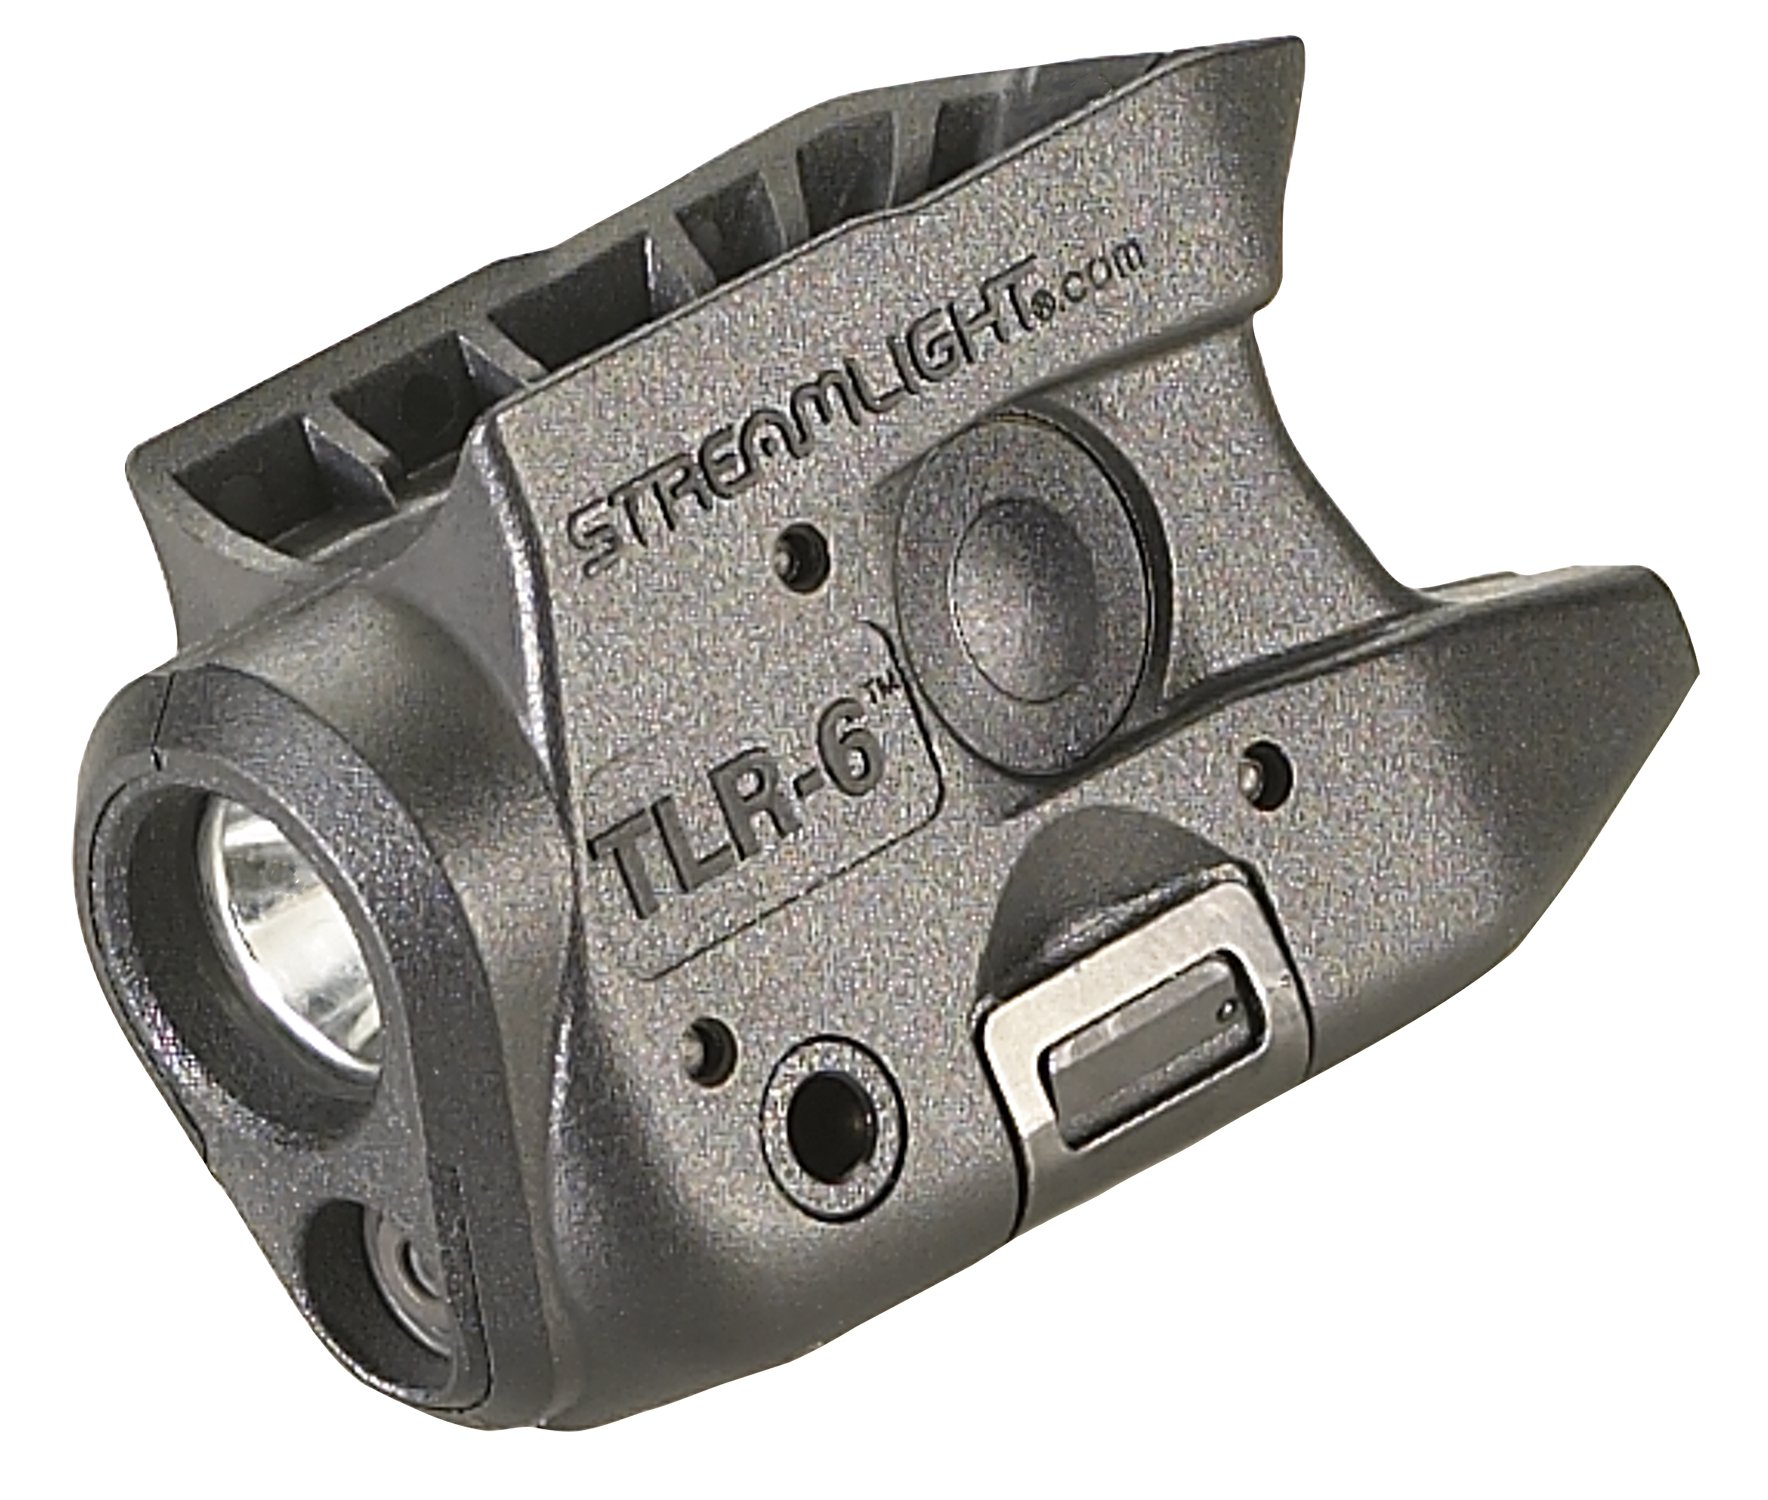 Streamlight 69274 TLR-6 Tactical Pistol Mount Flashlight 100 Lumen with Integrated Red Aiming Laser for KAHR Arms CM/CT/CW/P/PM/TP Both 9 and 40 Only, Black - 100 Lumens